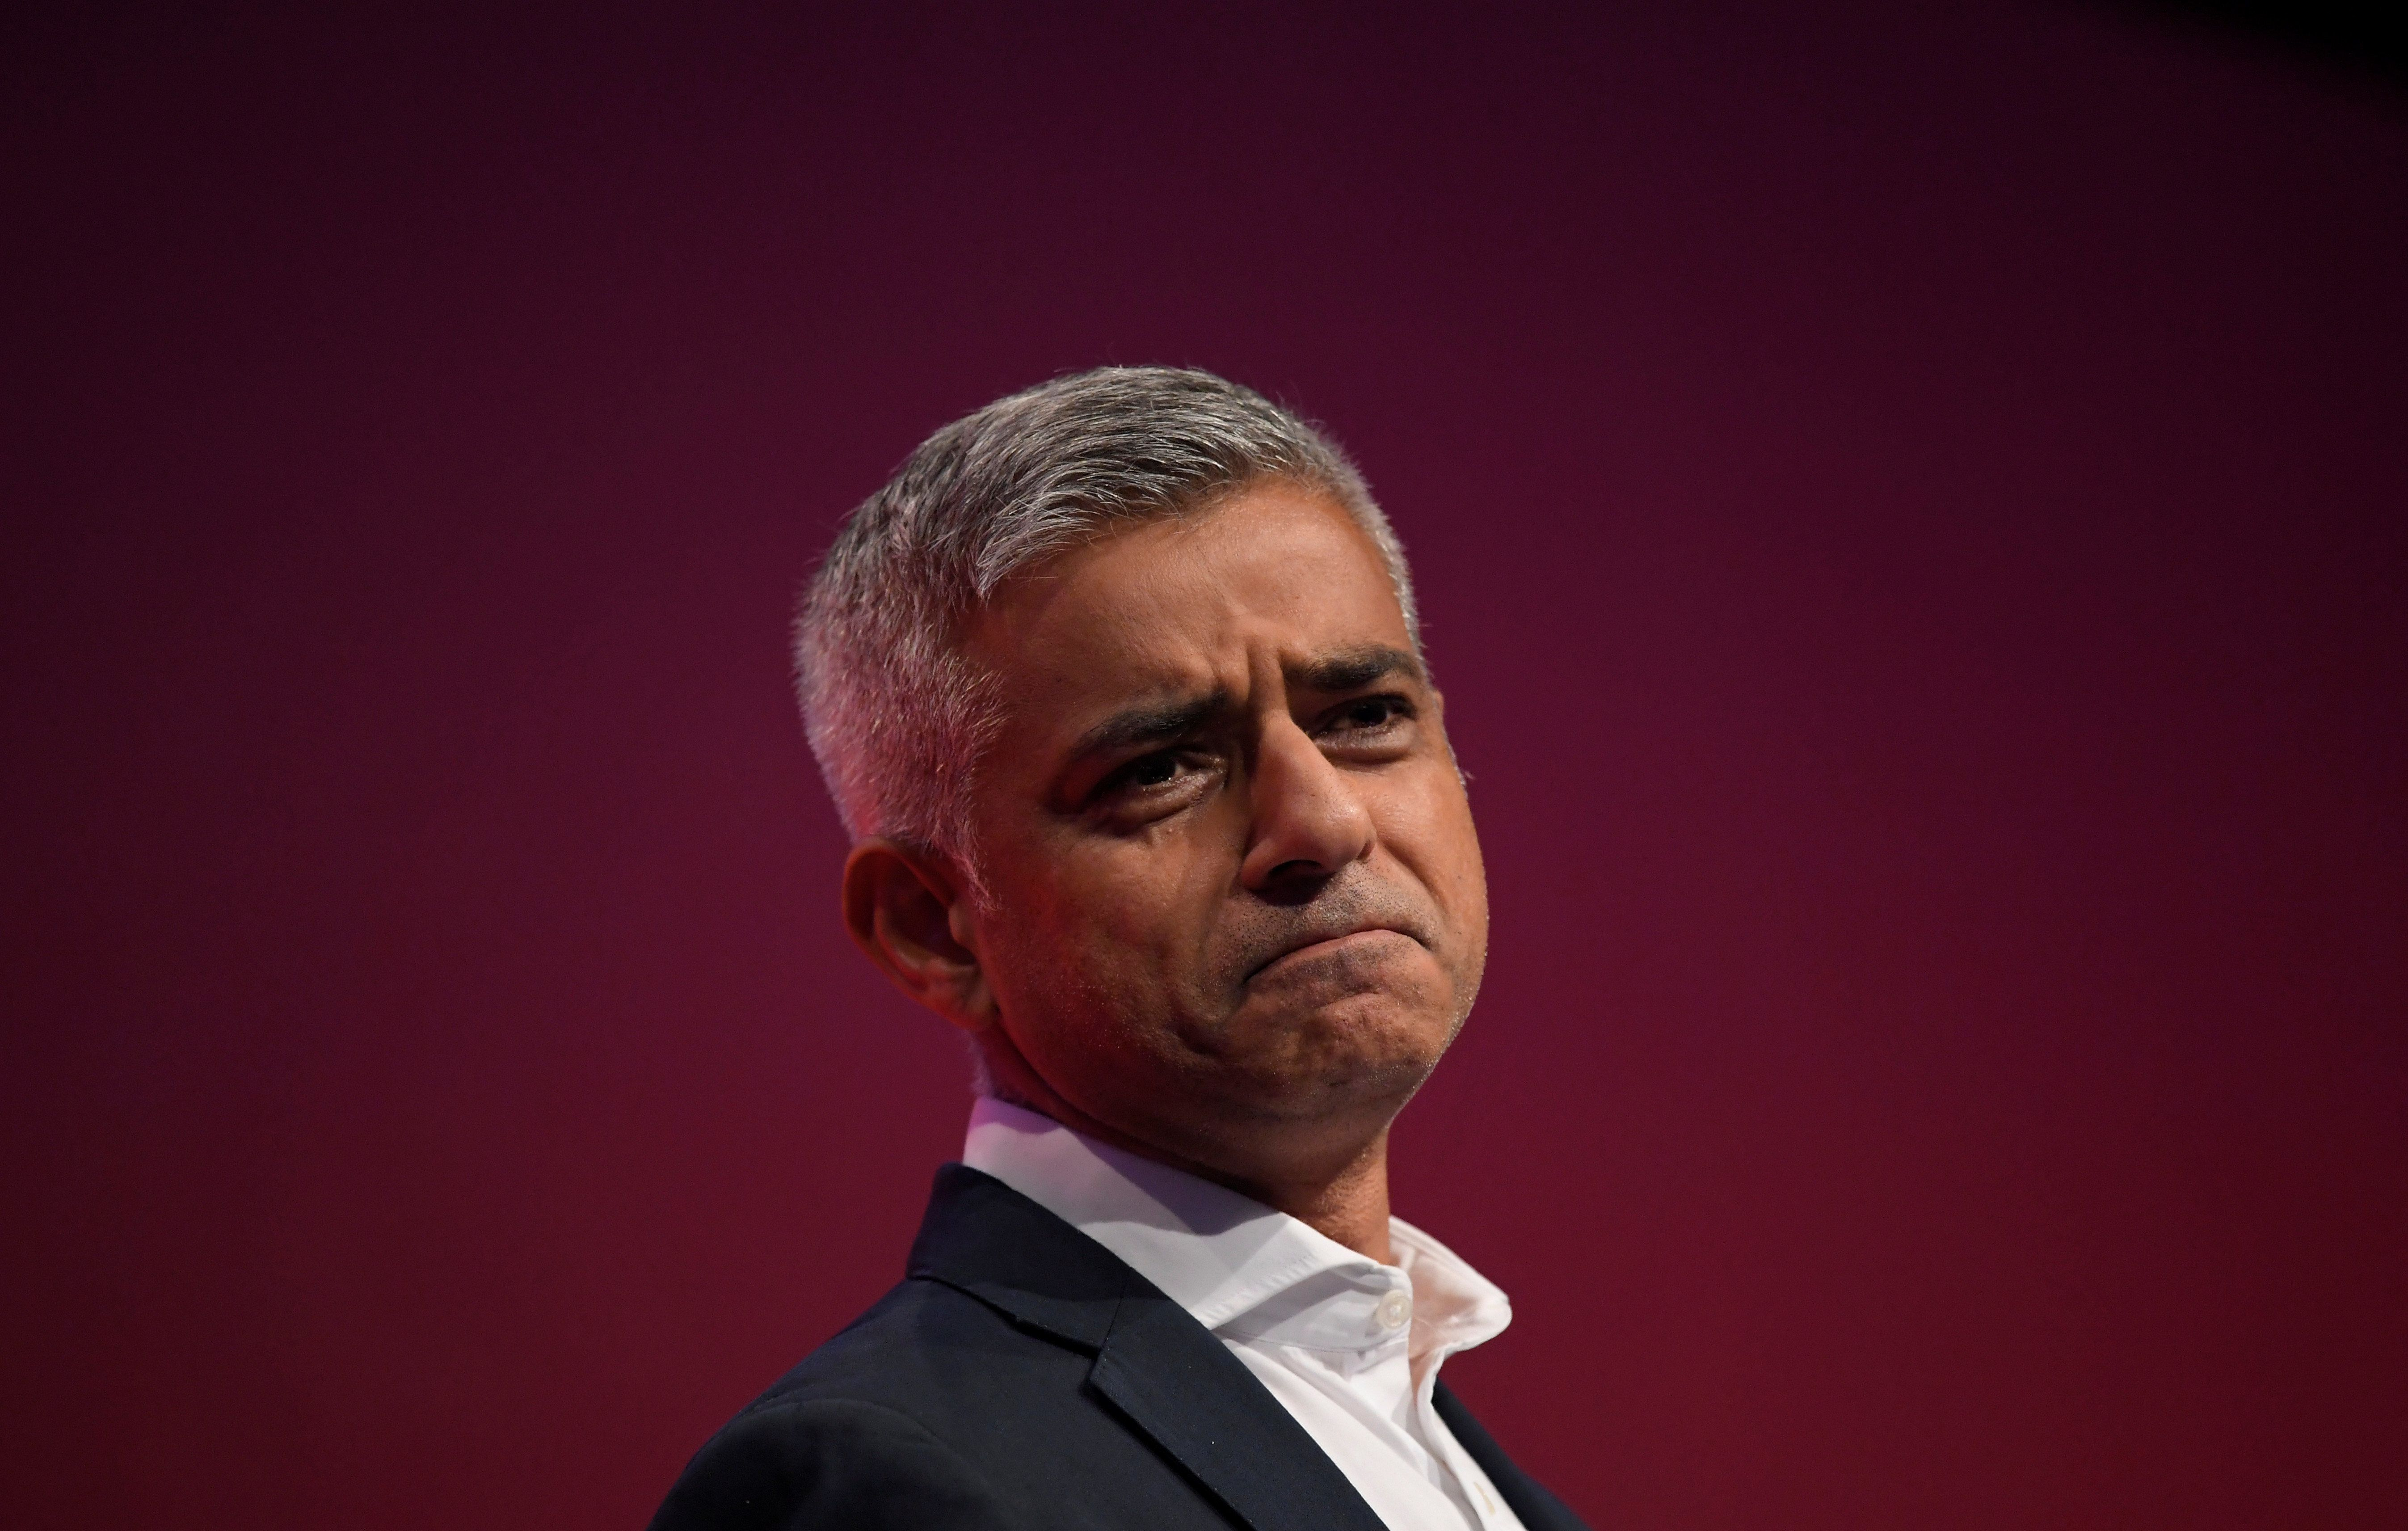 London Mayor Pushes For Second Brexit